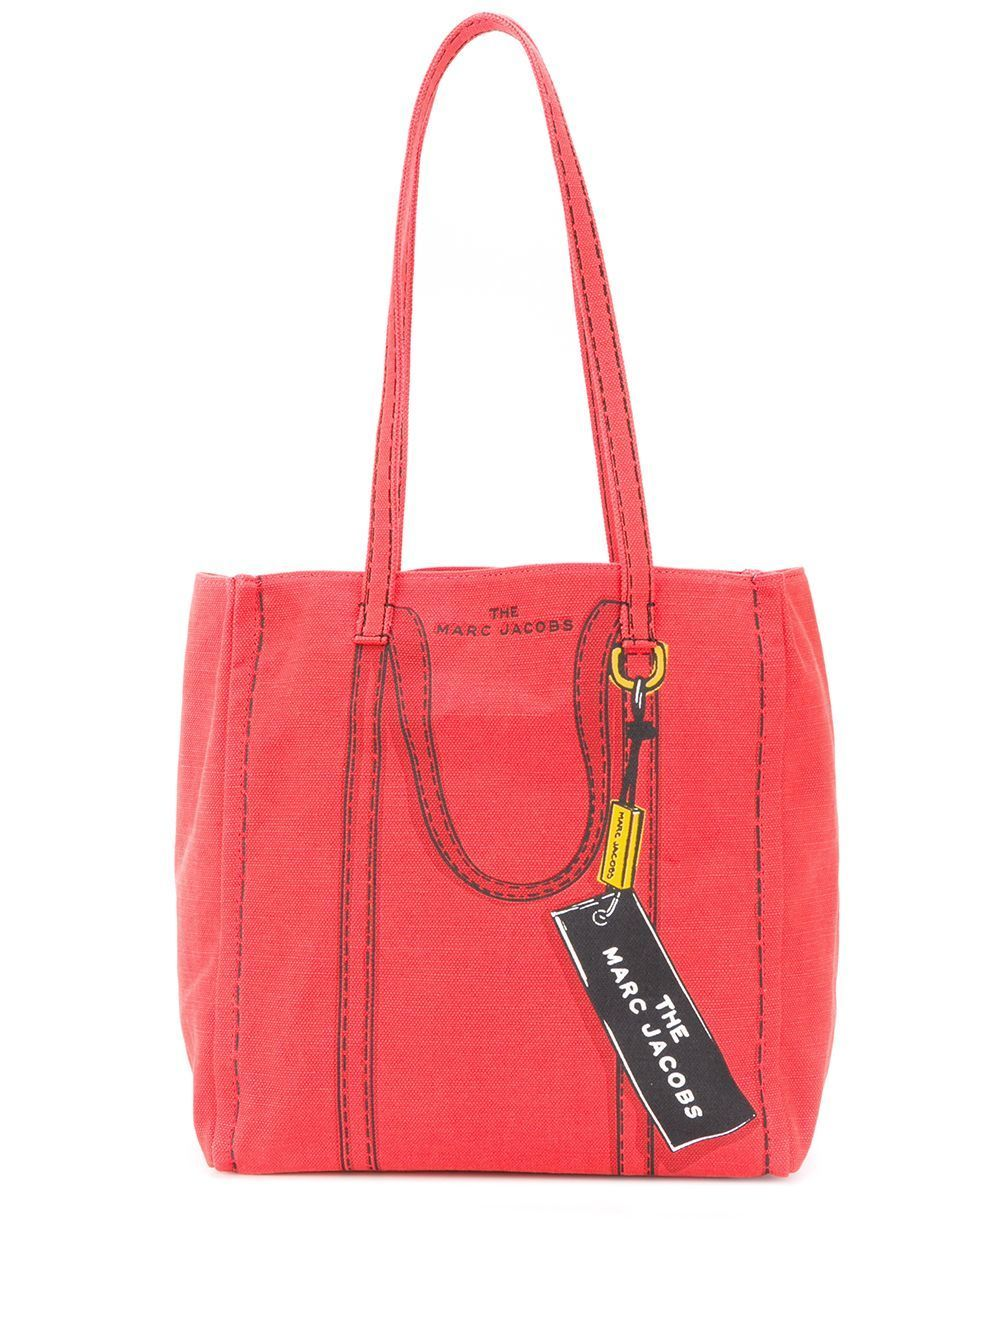 MARC JACOBS WOMEN'S M0015787601 RED COTTON TOTE